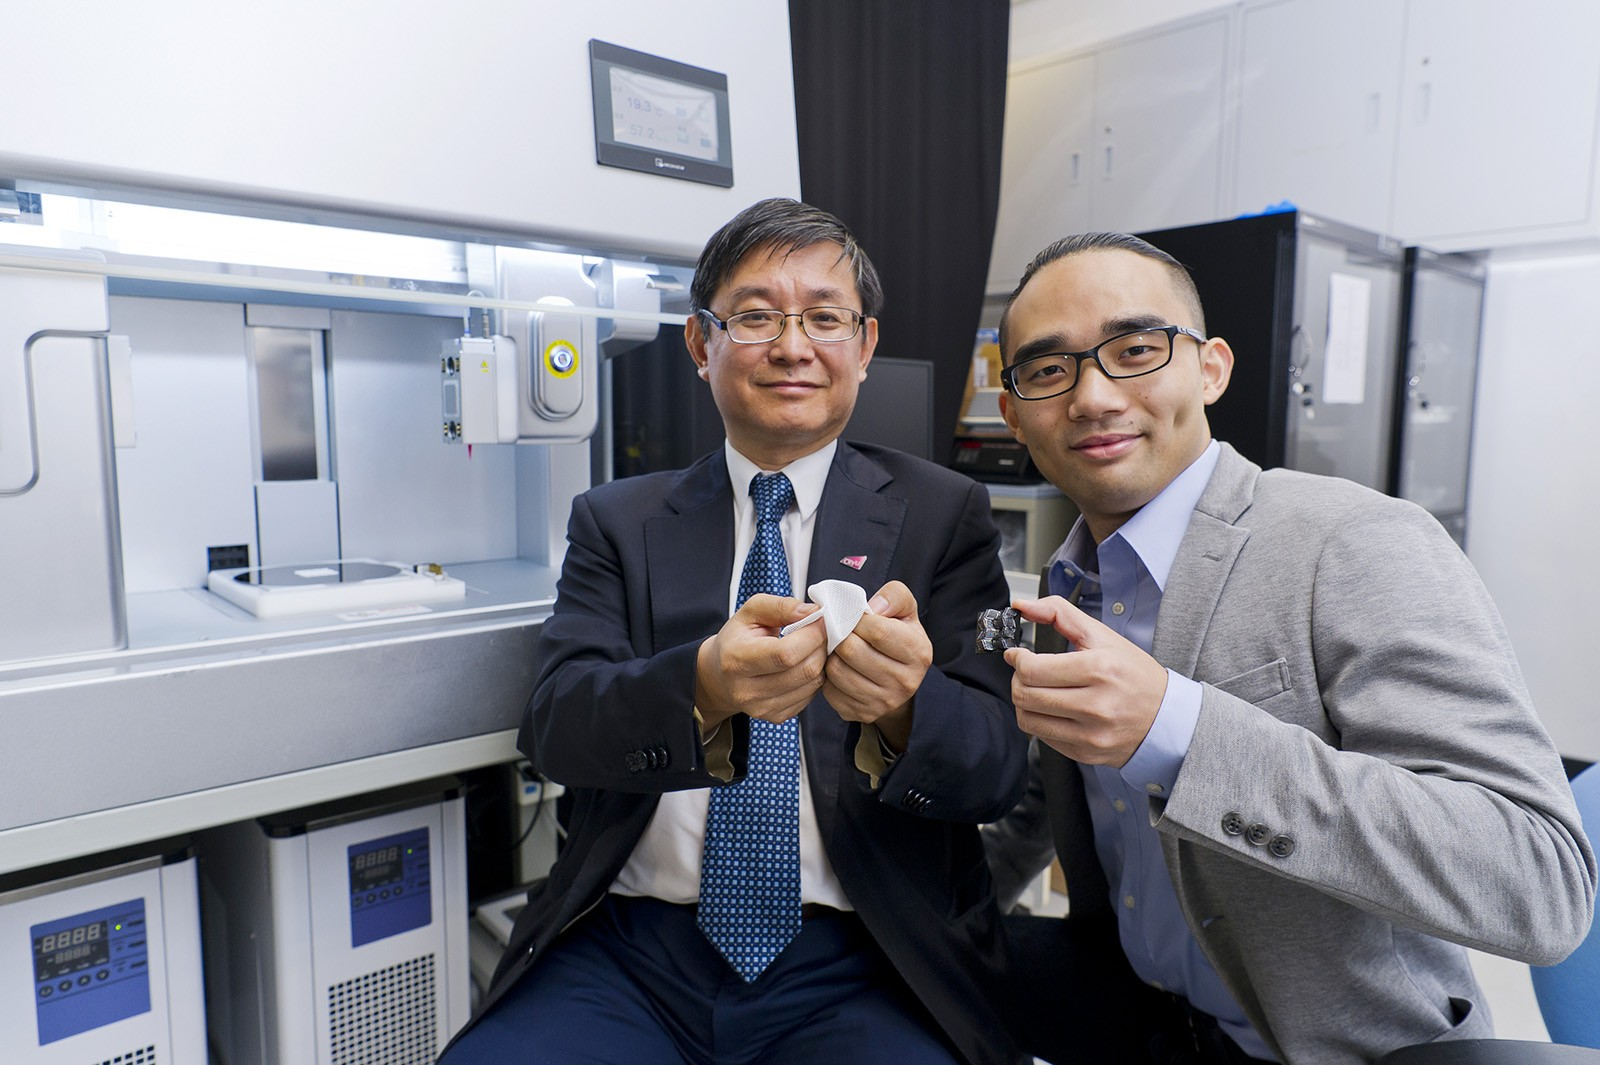 Improving 5G Networks & Space Travel With Ceramic 4D Printing